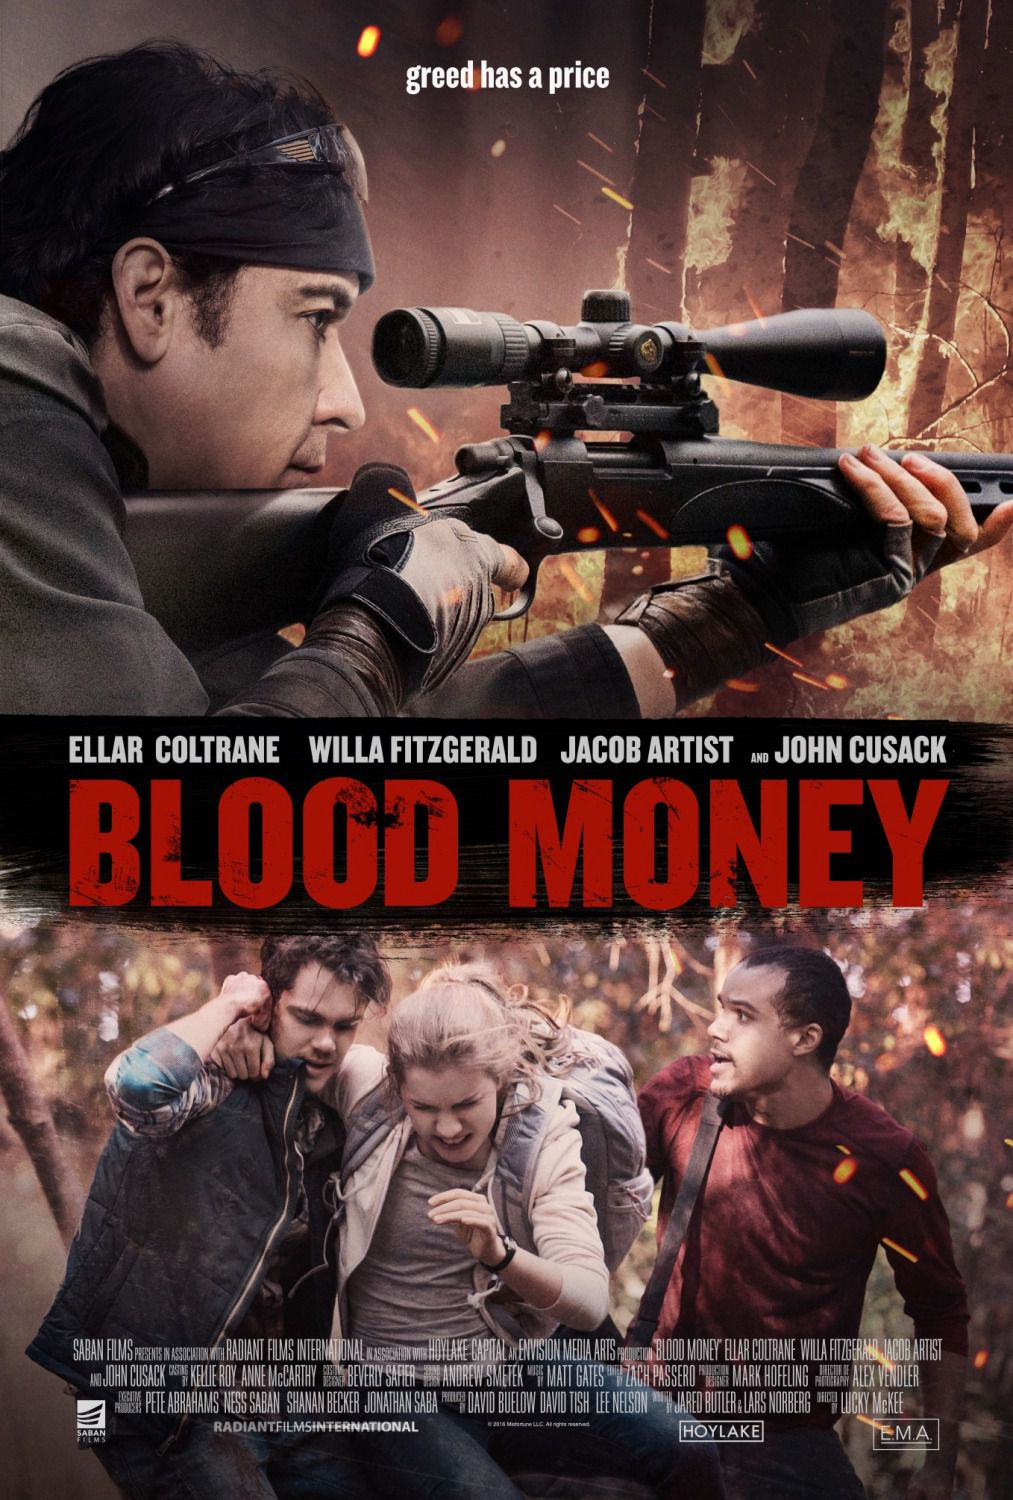 Blood Money by Lucky McKee - Ellar Coltrane, John Cusack, Ellar Coltrane, Willa Fitzgerald, Jacob Artist - film poster